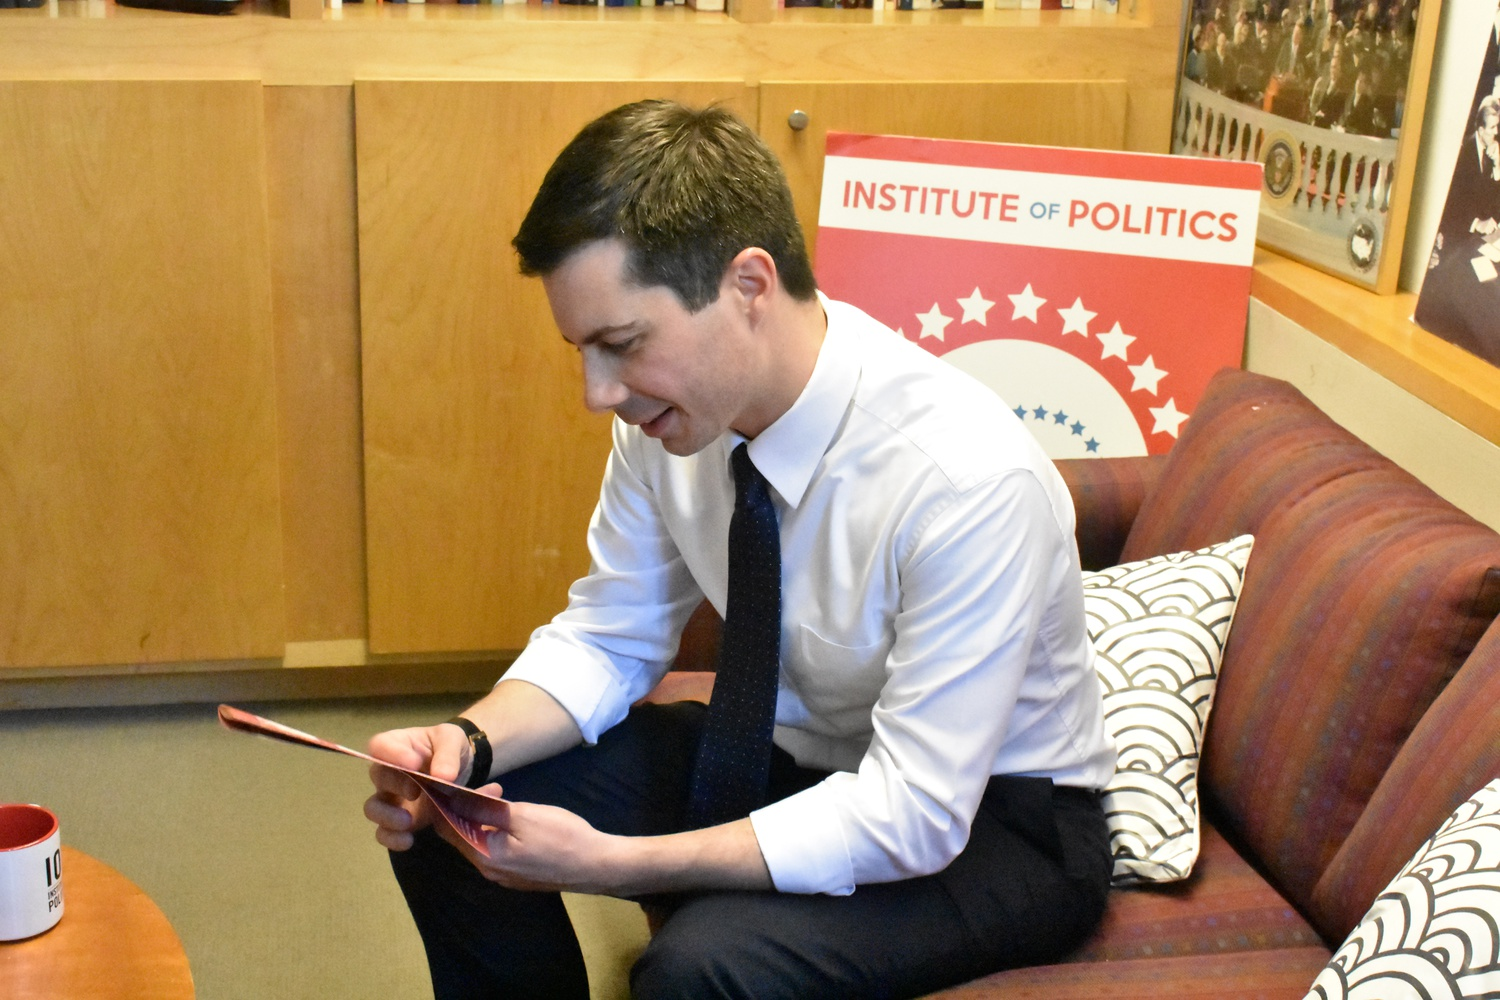 Mayor Pete served as the President of the Institute of Politics during his time at Harvard.